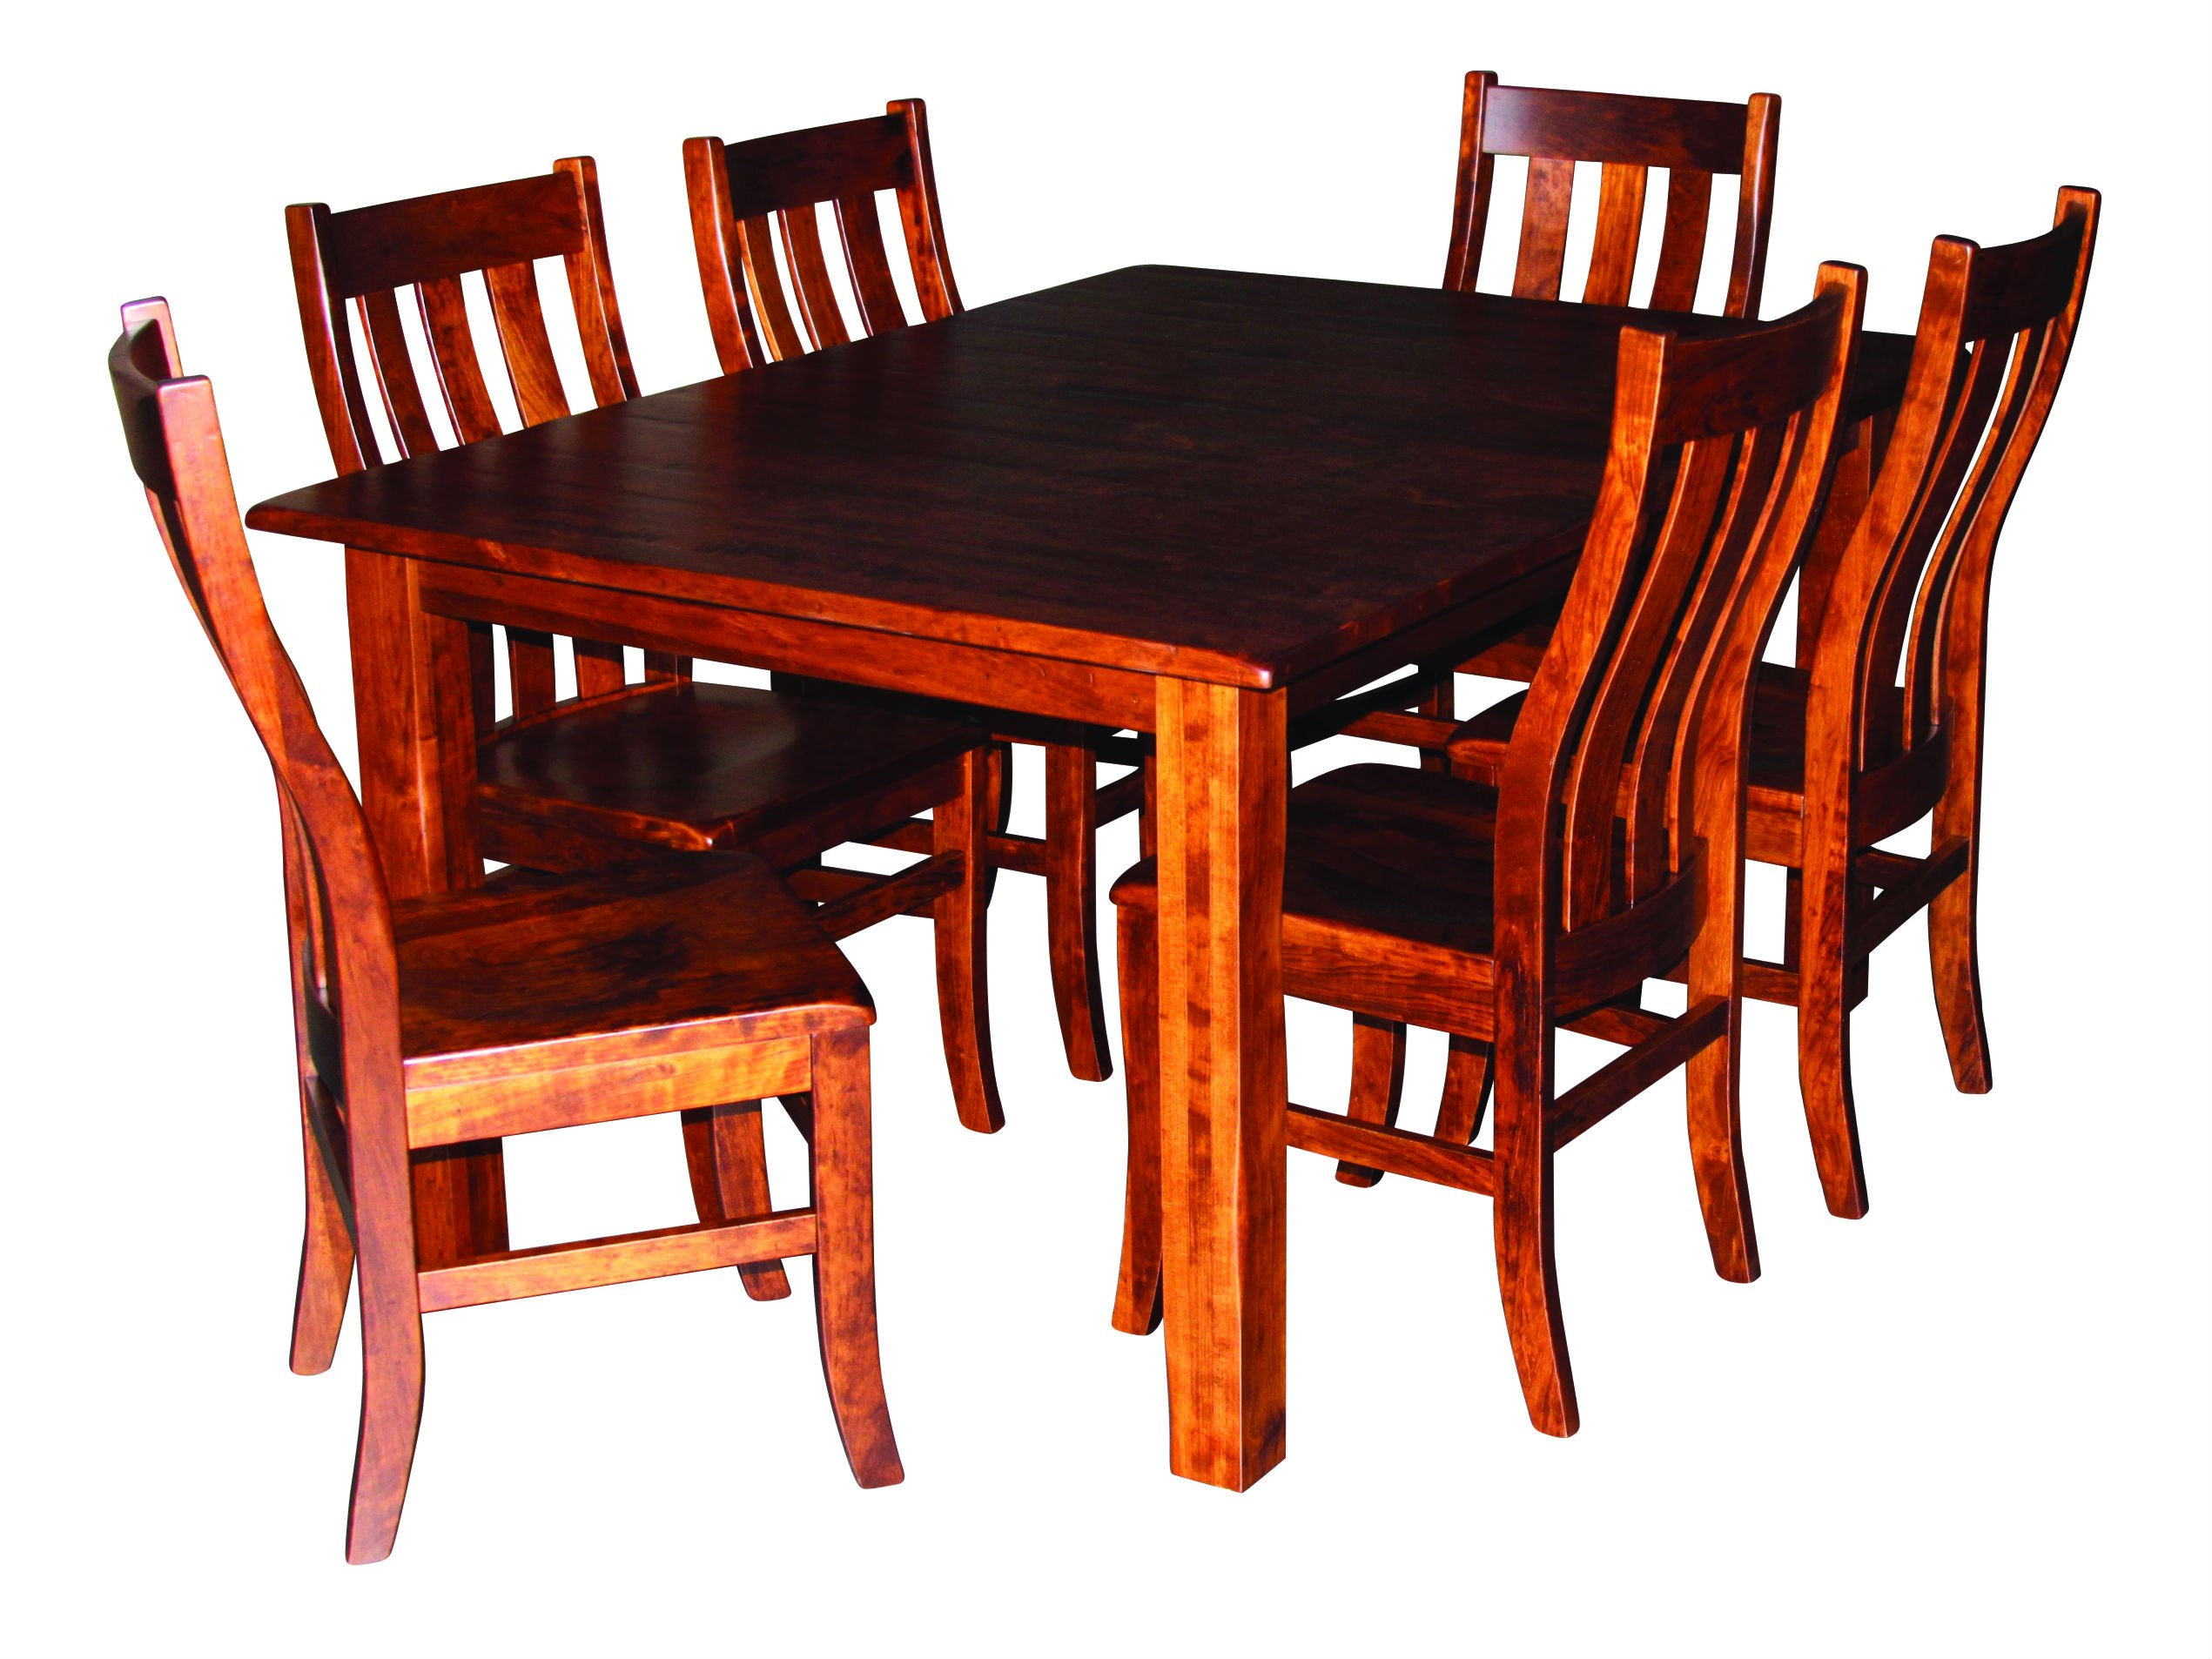 Aspen Tree Interiors Amish Made 9 Piece Solid Wood Cherry Kitchen Dining Room Table for 6 Set - Heirloom Furniture for  the  Holidays and Everyday, White Glove Delivery, 2 Leaves by ASPEN TREE INTERIORS